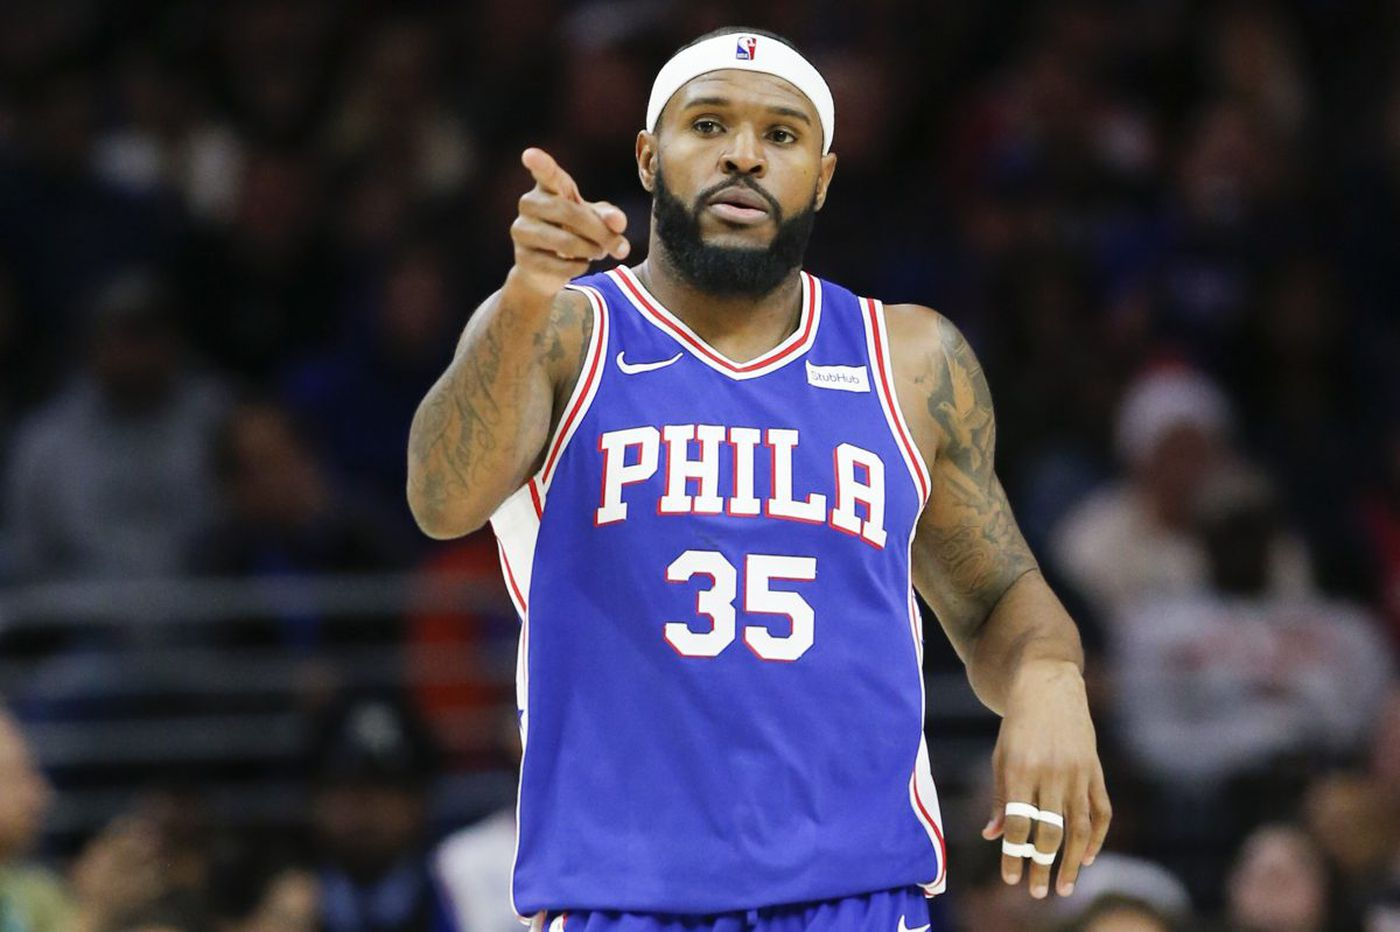 Sixers' Trevor Booker is working toward becoming a billionaire